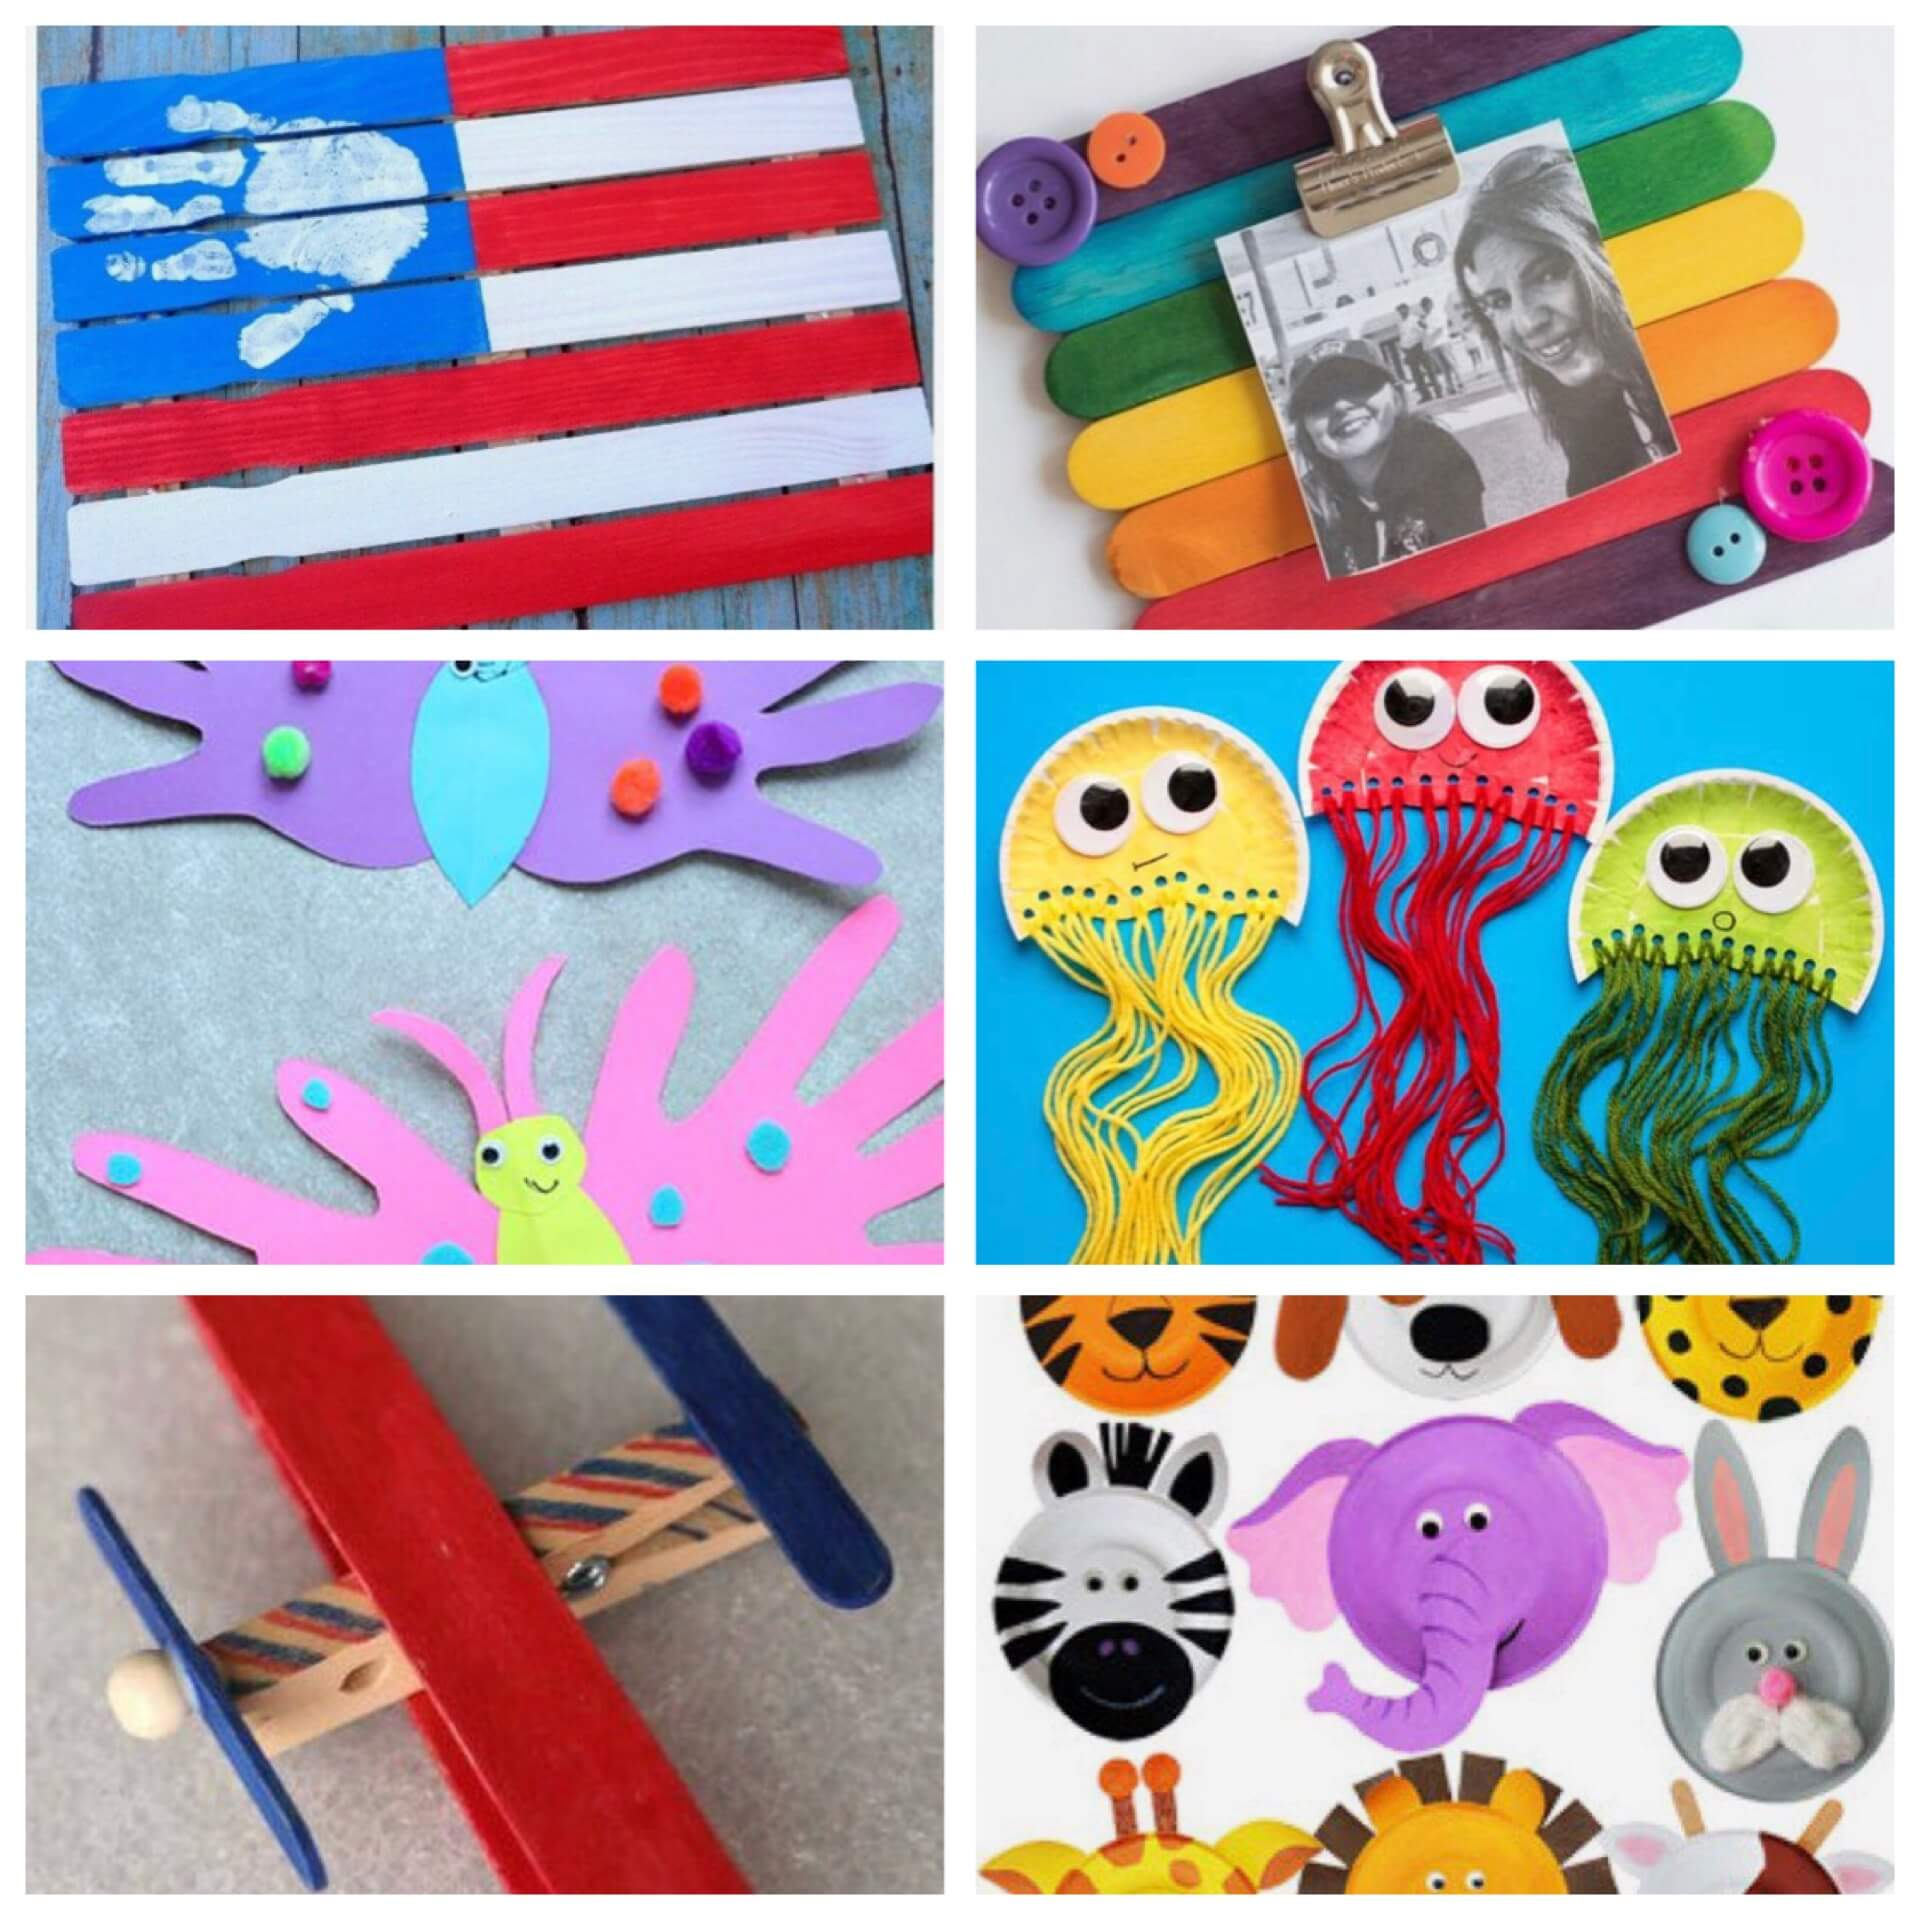 Expressive Arts Experiences. Fun Crafts for Kids!